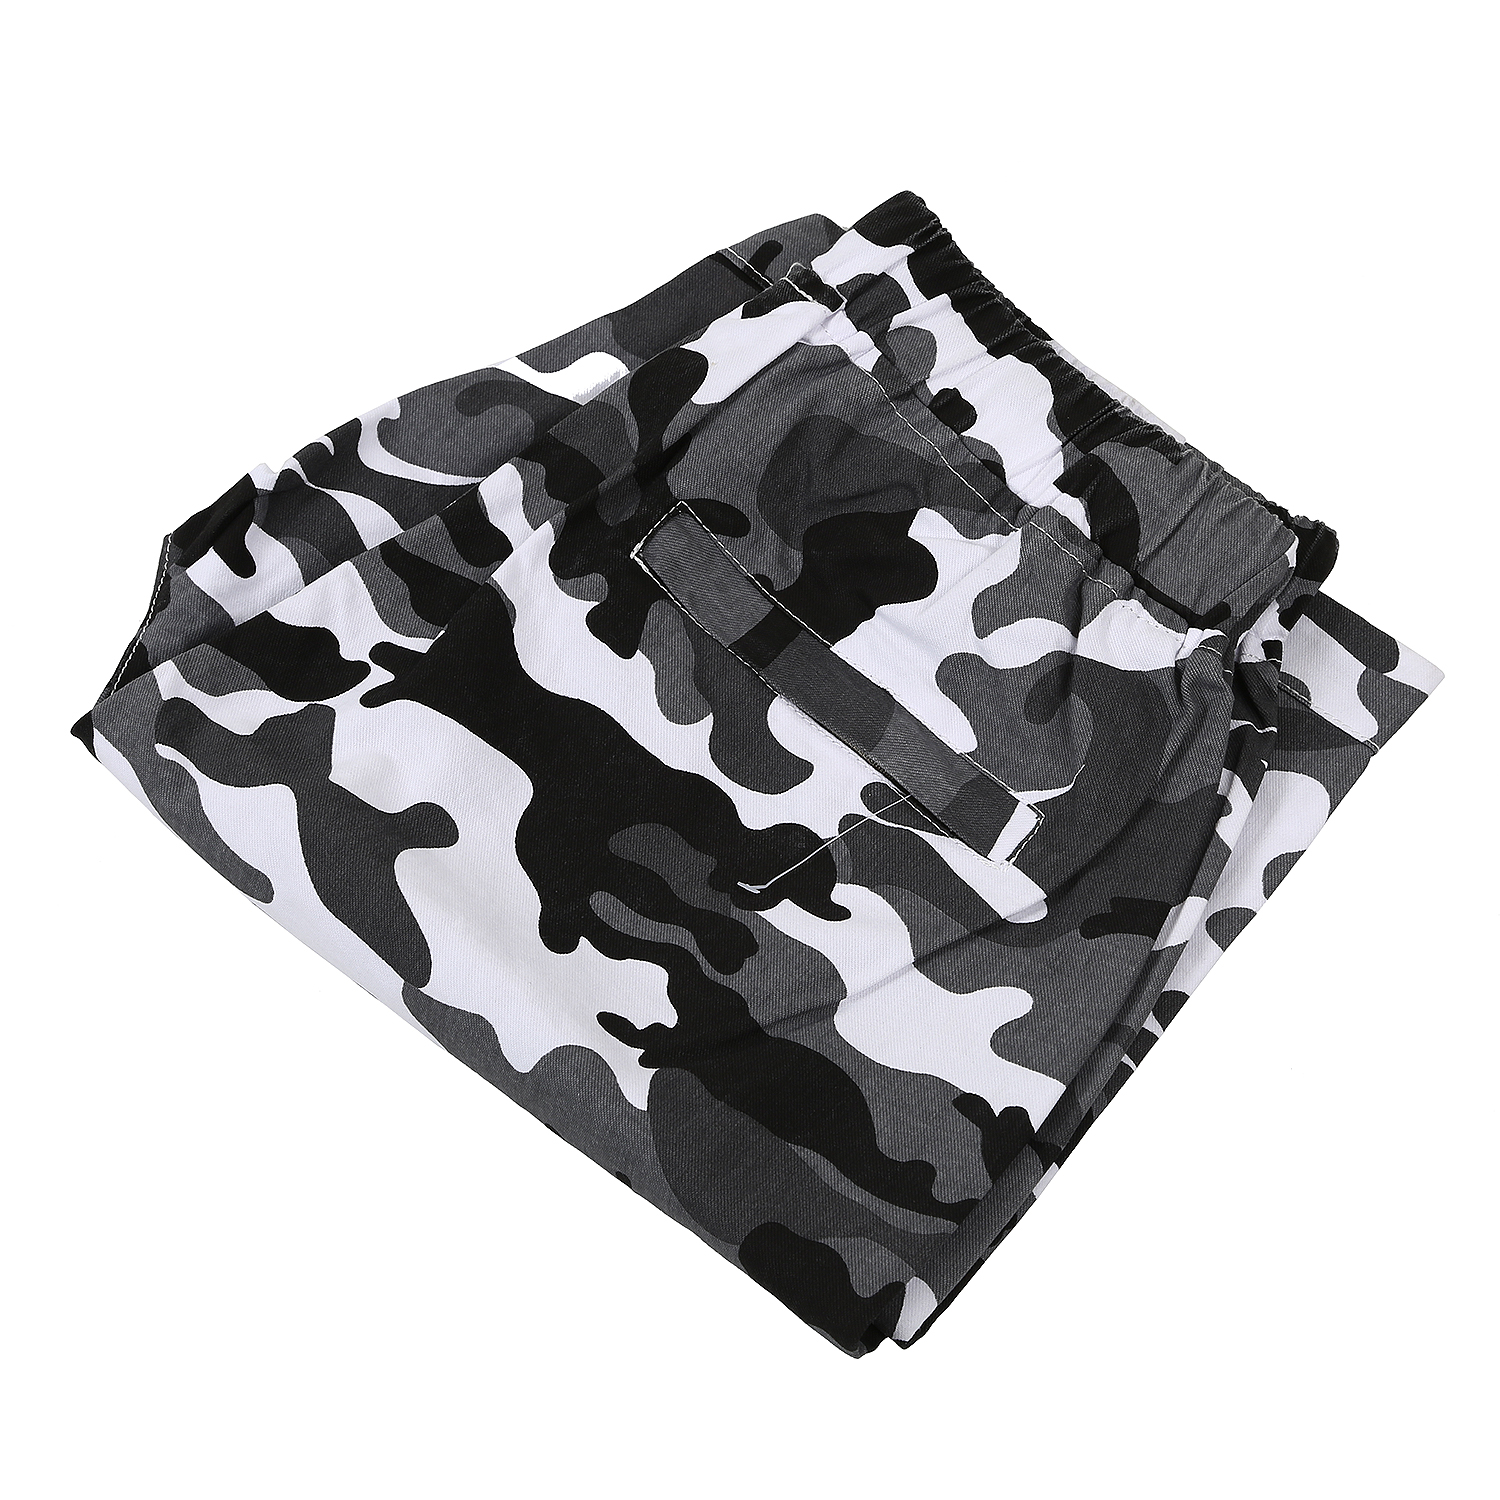 NEW-Men Summer Shorts Cool Camouflage Hot Sale Casual Short Pants Comfortable Camo Men Cargo Shorts